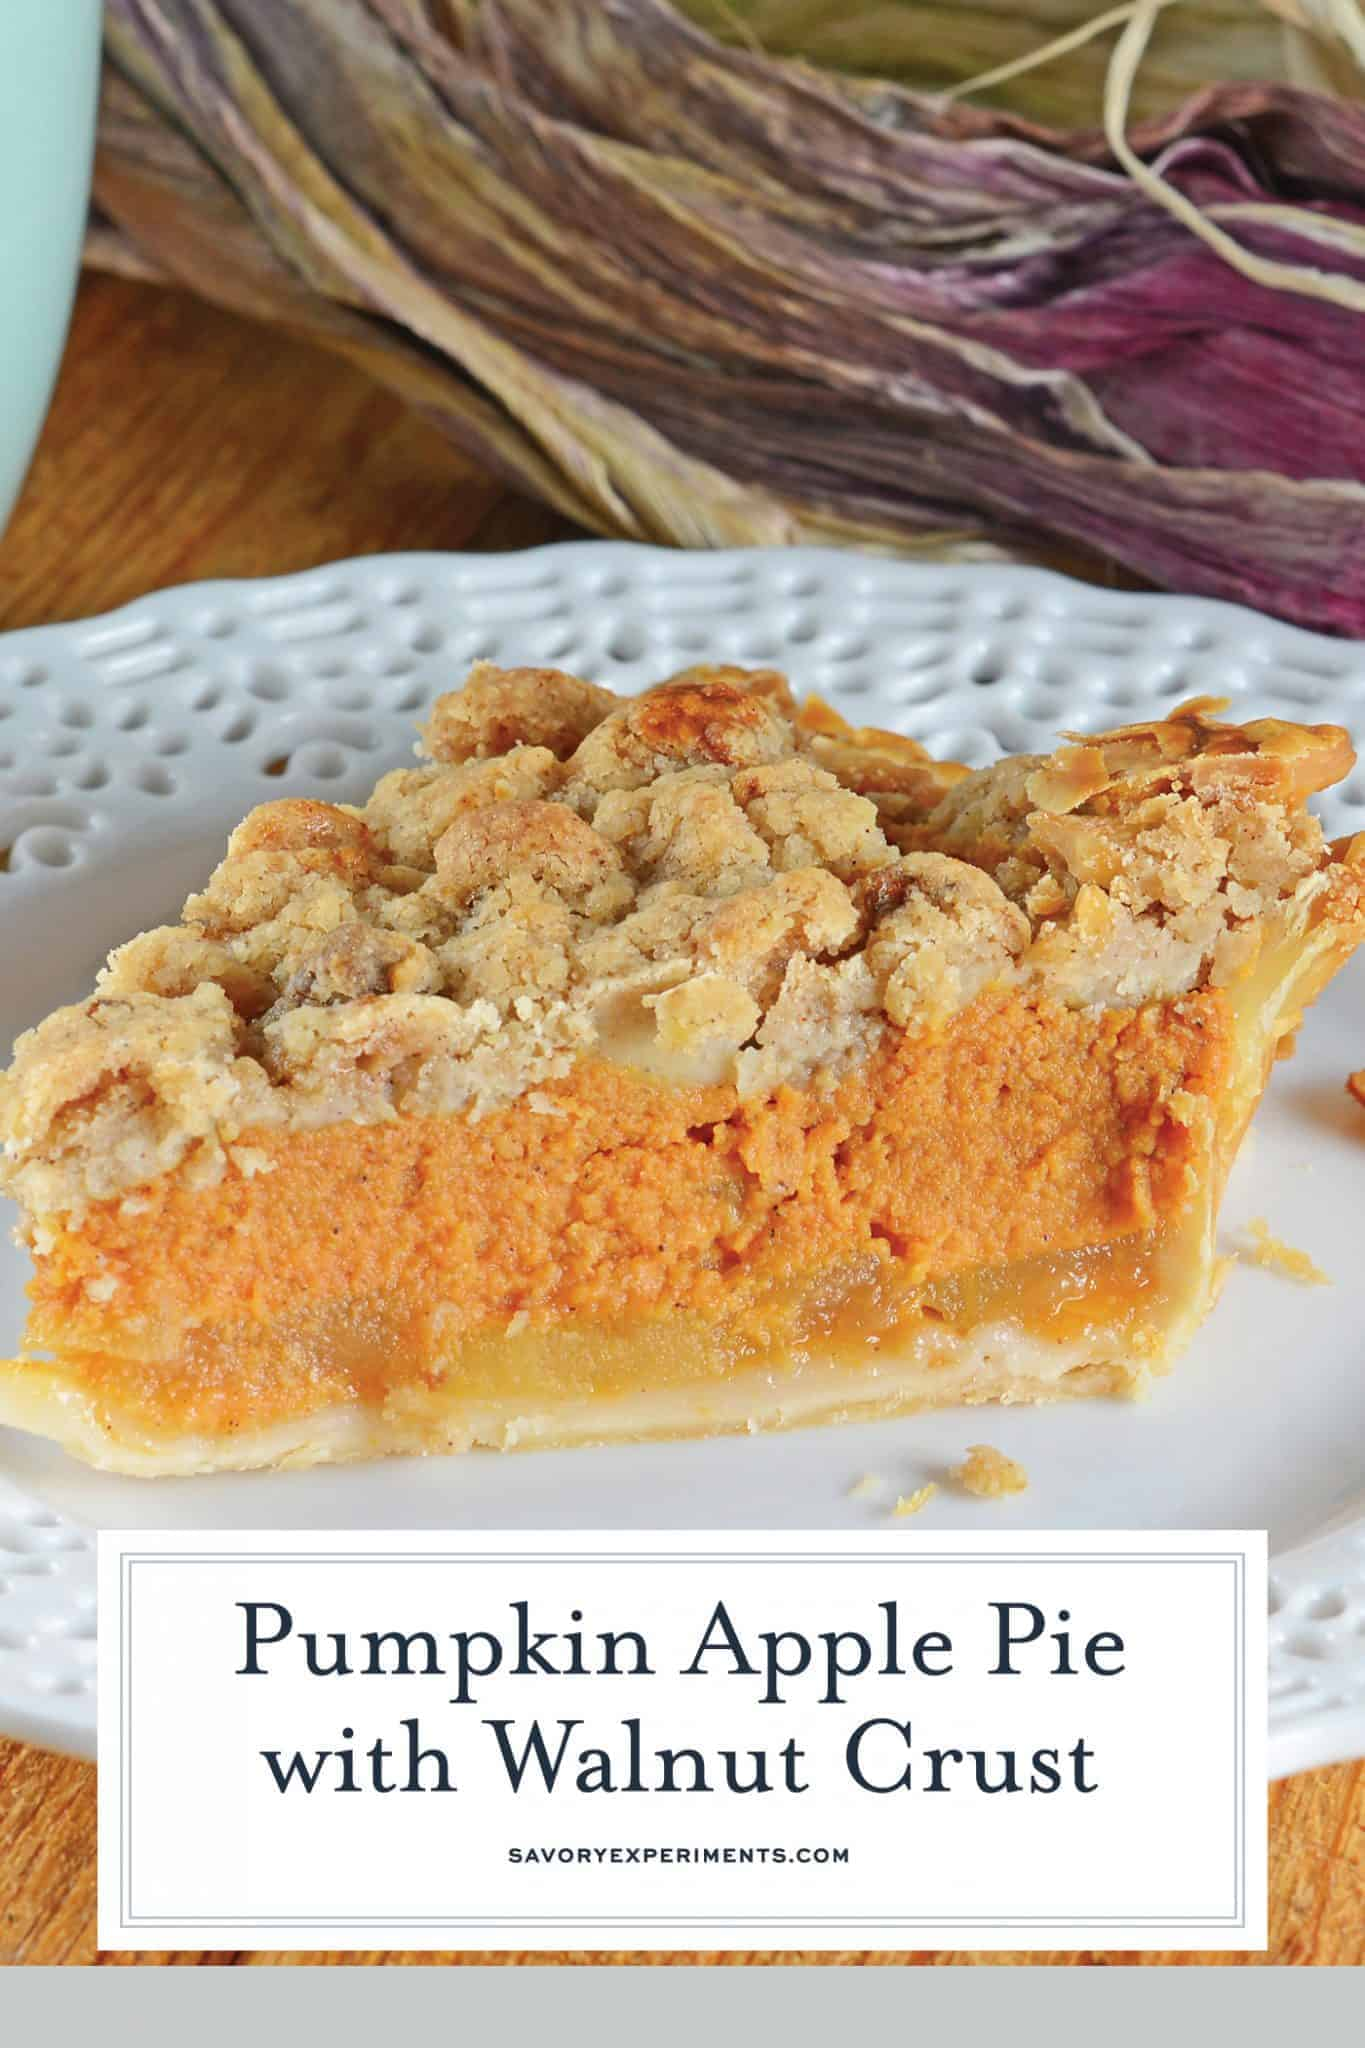 Pumpkin Apple Pie is the best of both worlds! Pumpkin pie and apple pie merged together in a pecan crust with streusel topping. The perfect holiday dessert! #pumpkinpie #applepie www.savoryexperiments.com